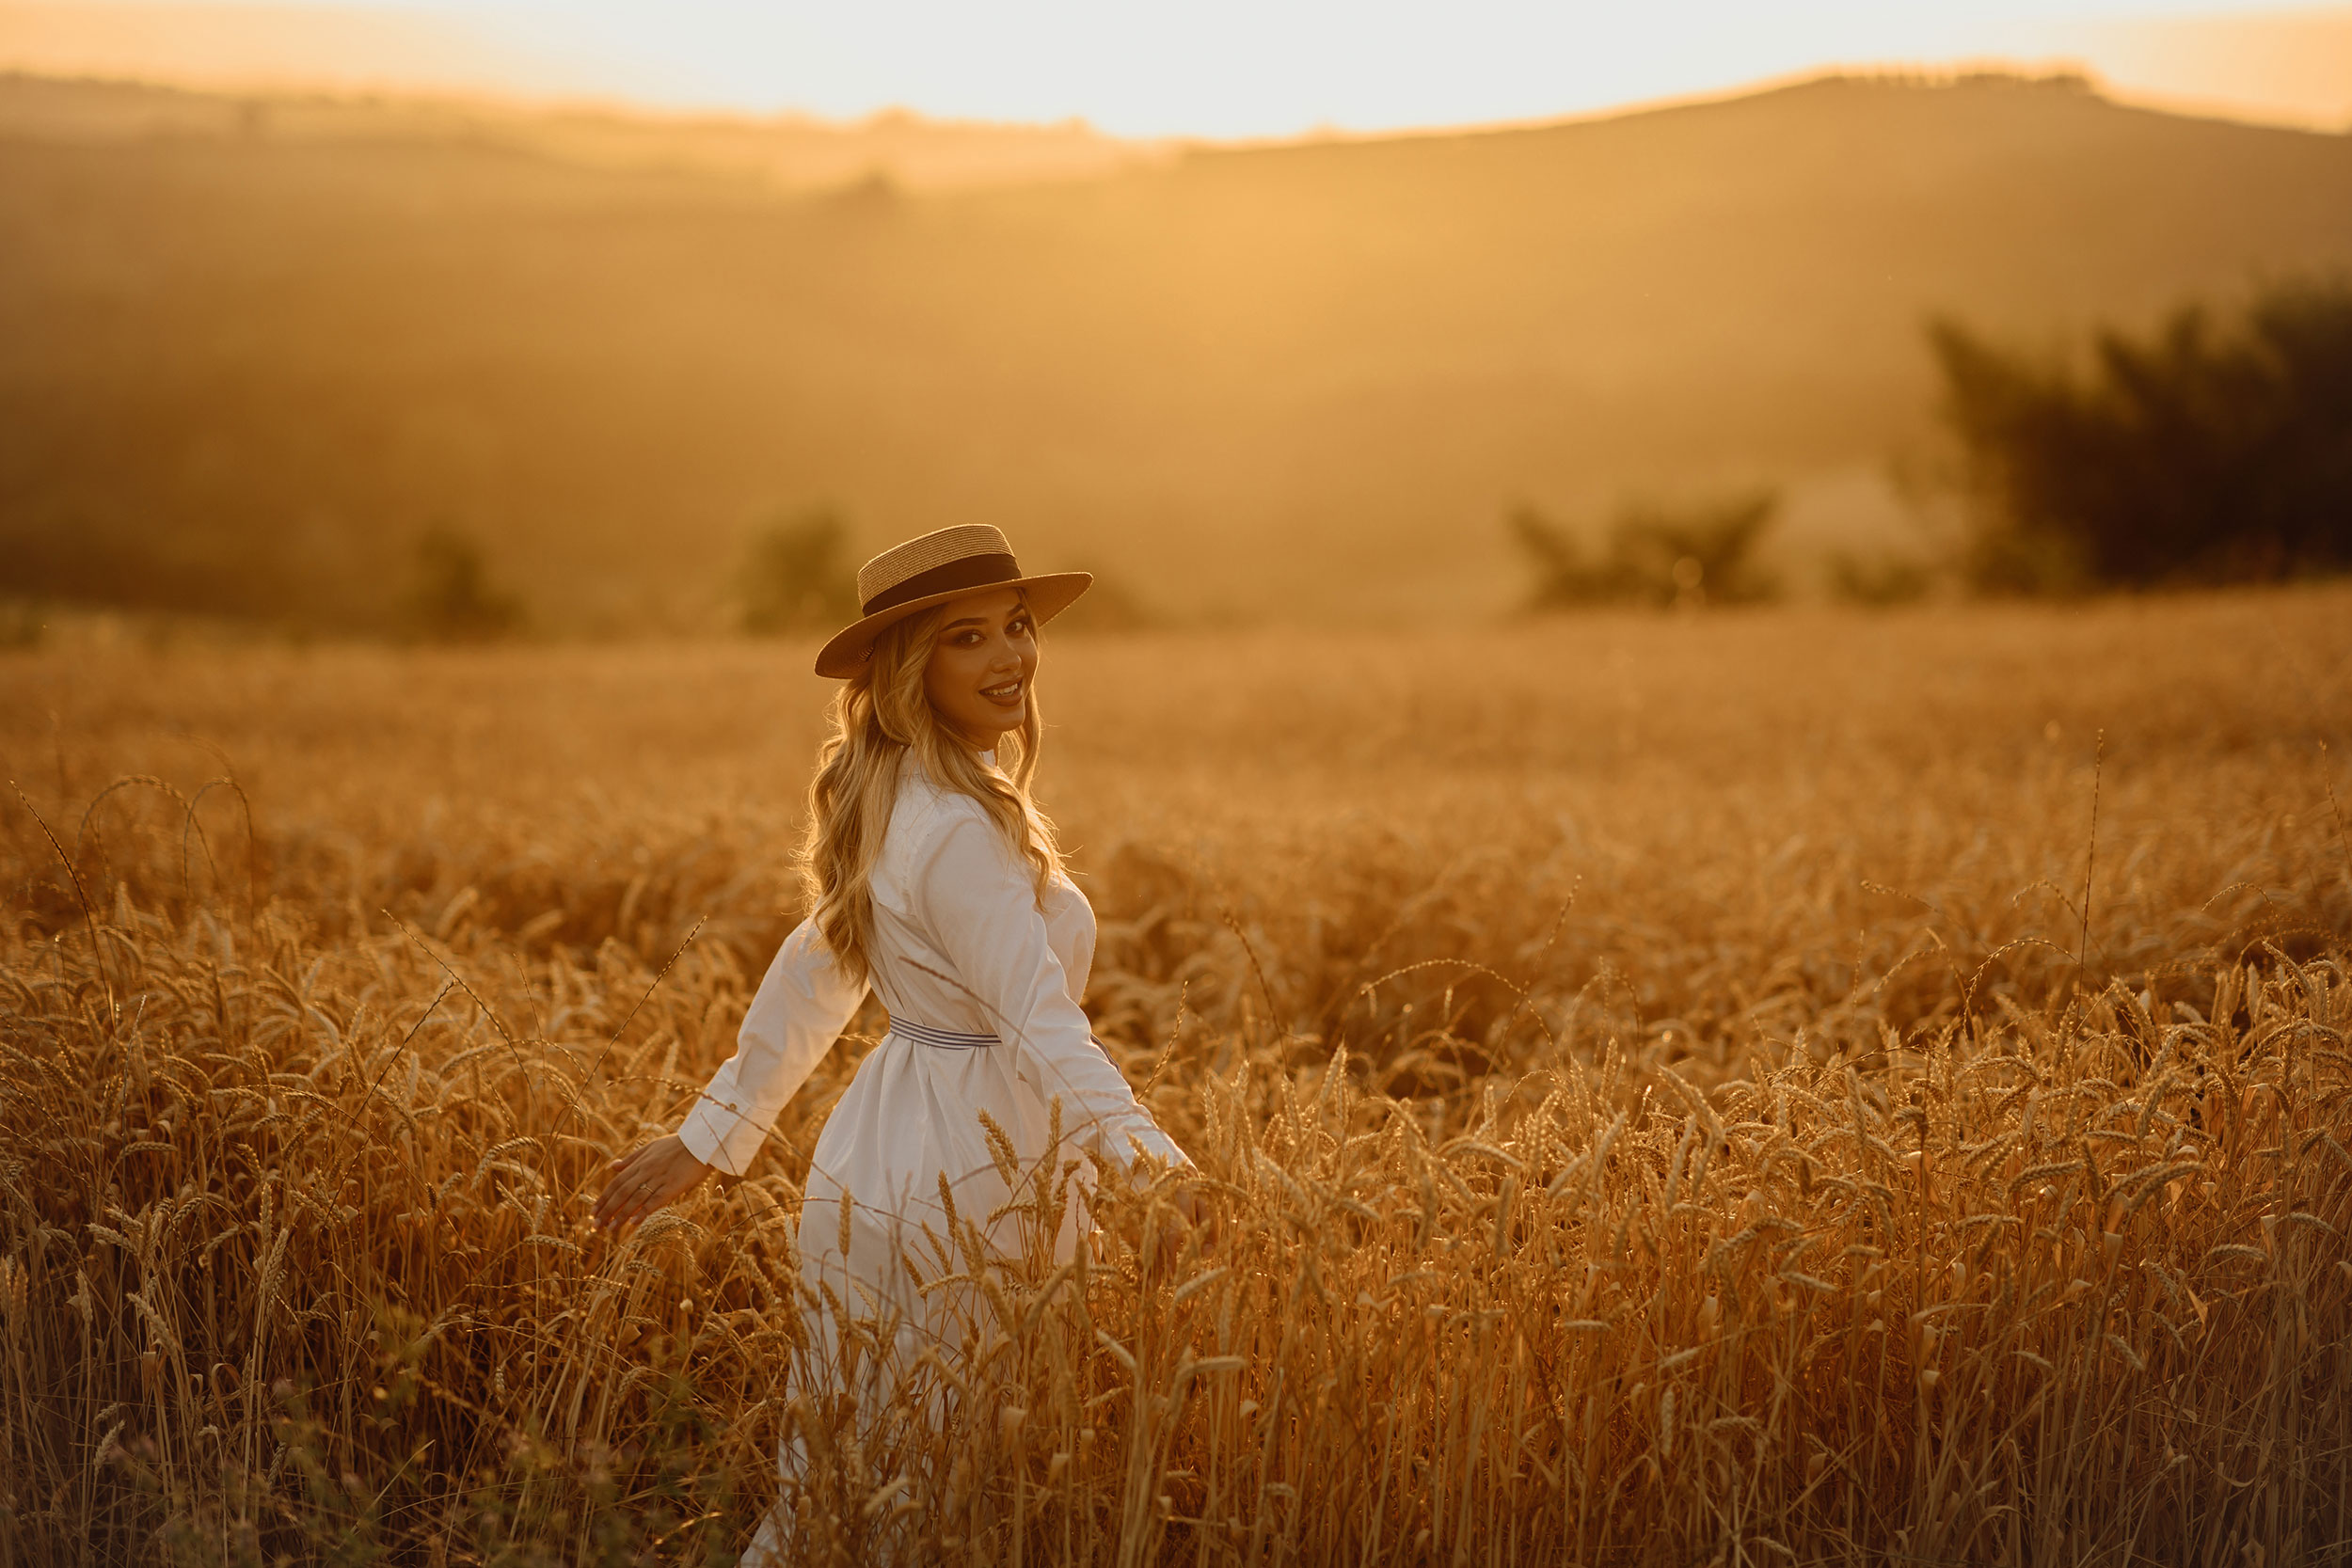 Adisa Gjo wearing a white dress and a hat during the photoshoot